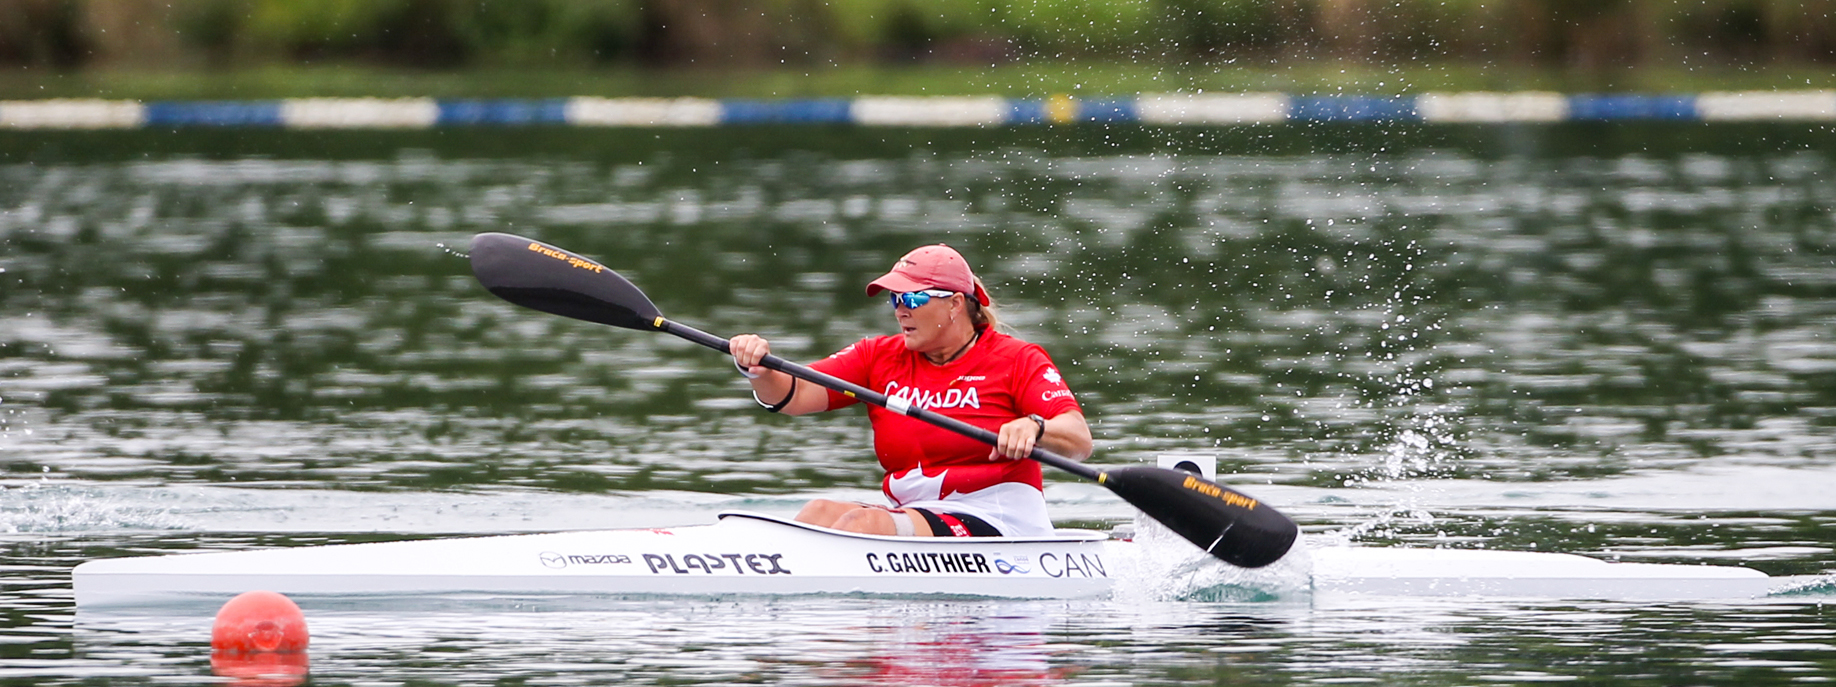 Bombardier (Retired) Christine Gauthier has become one of the country's top para athletes since retiring from the Canadian Army and will speak at the the annual pasta dinner event. She competed as a member of Canada's Paralympic team at the 2016 Games in Rio, and is a five-time world champion para kayaker, Soldier On athlete and Invictus Games competitor. Photo: Canada Army Run